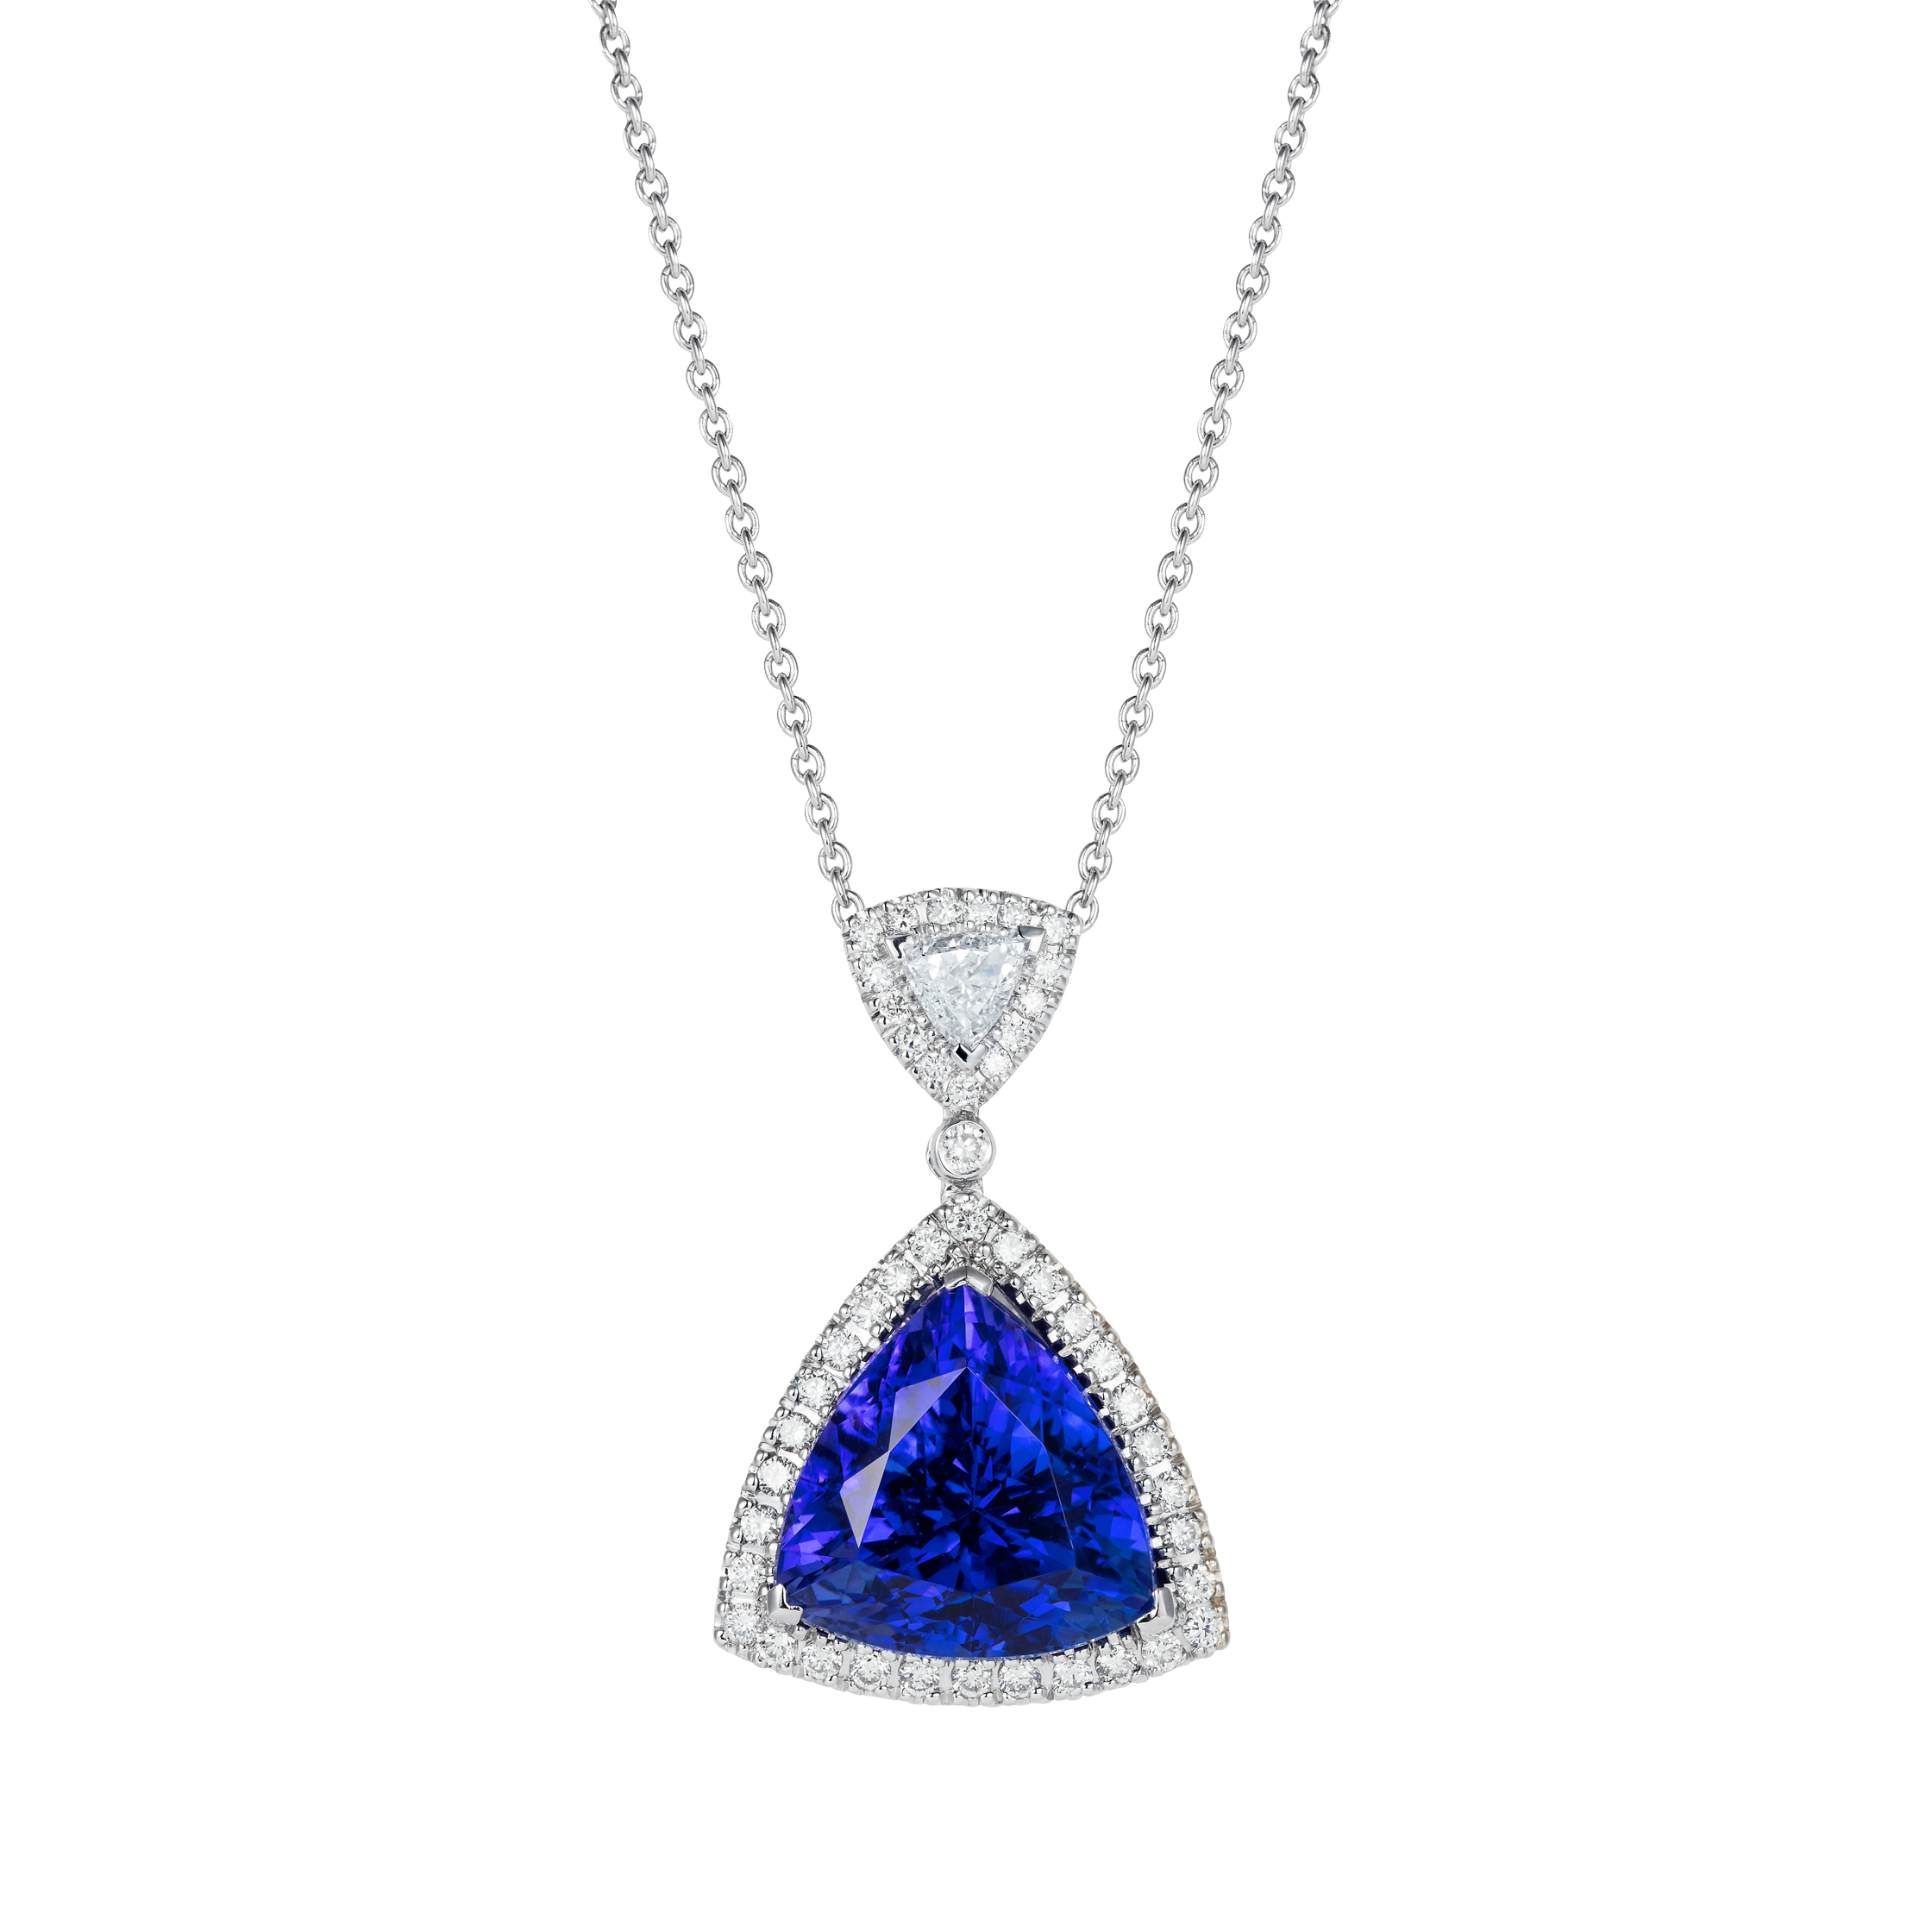 diamond necklace gold oval di tanzanite white pendant halo tz and jewelry pid lady